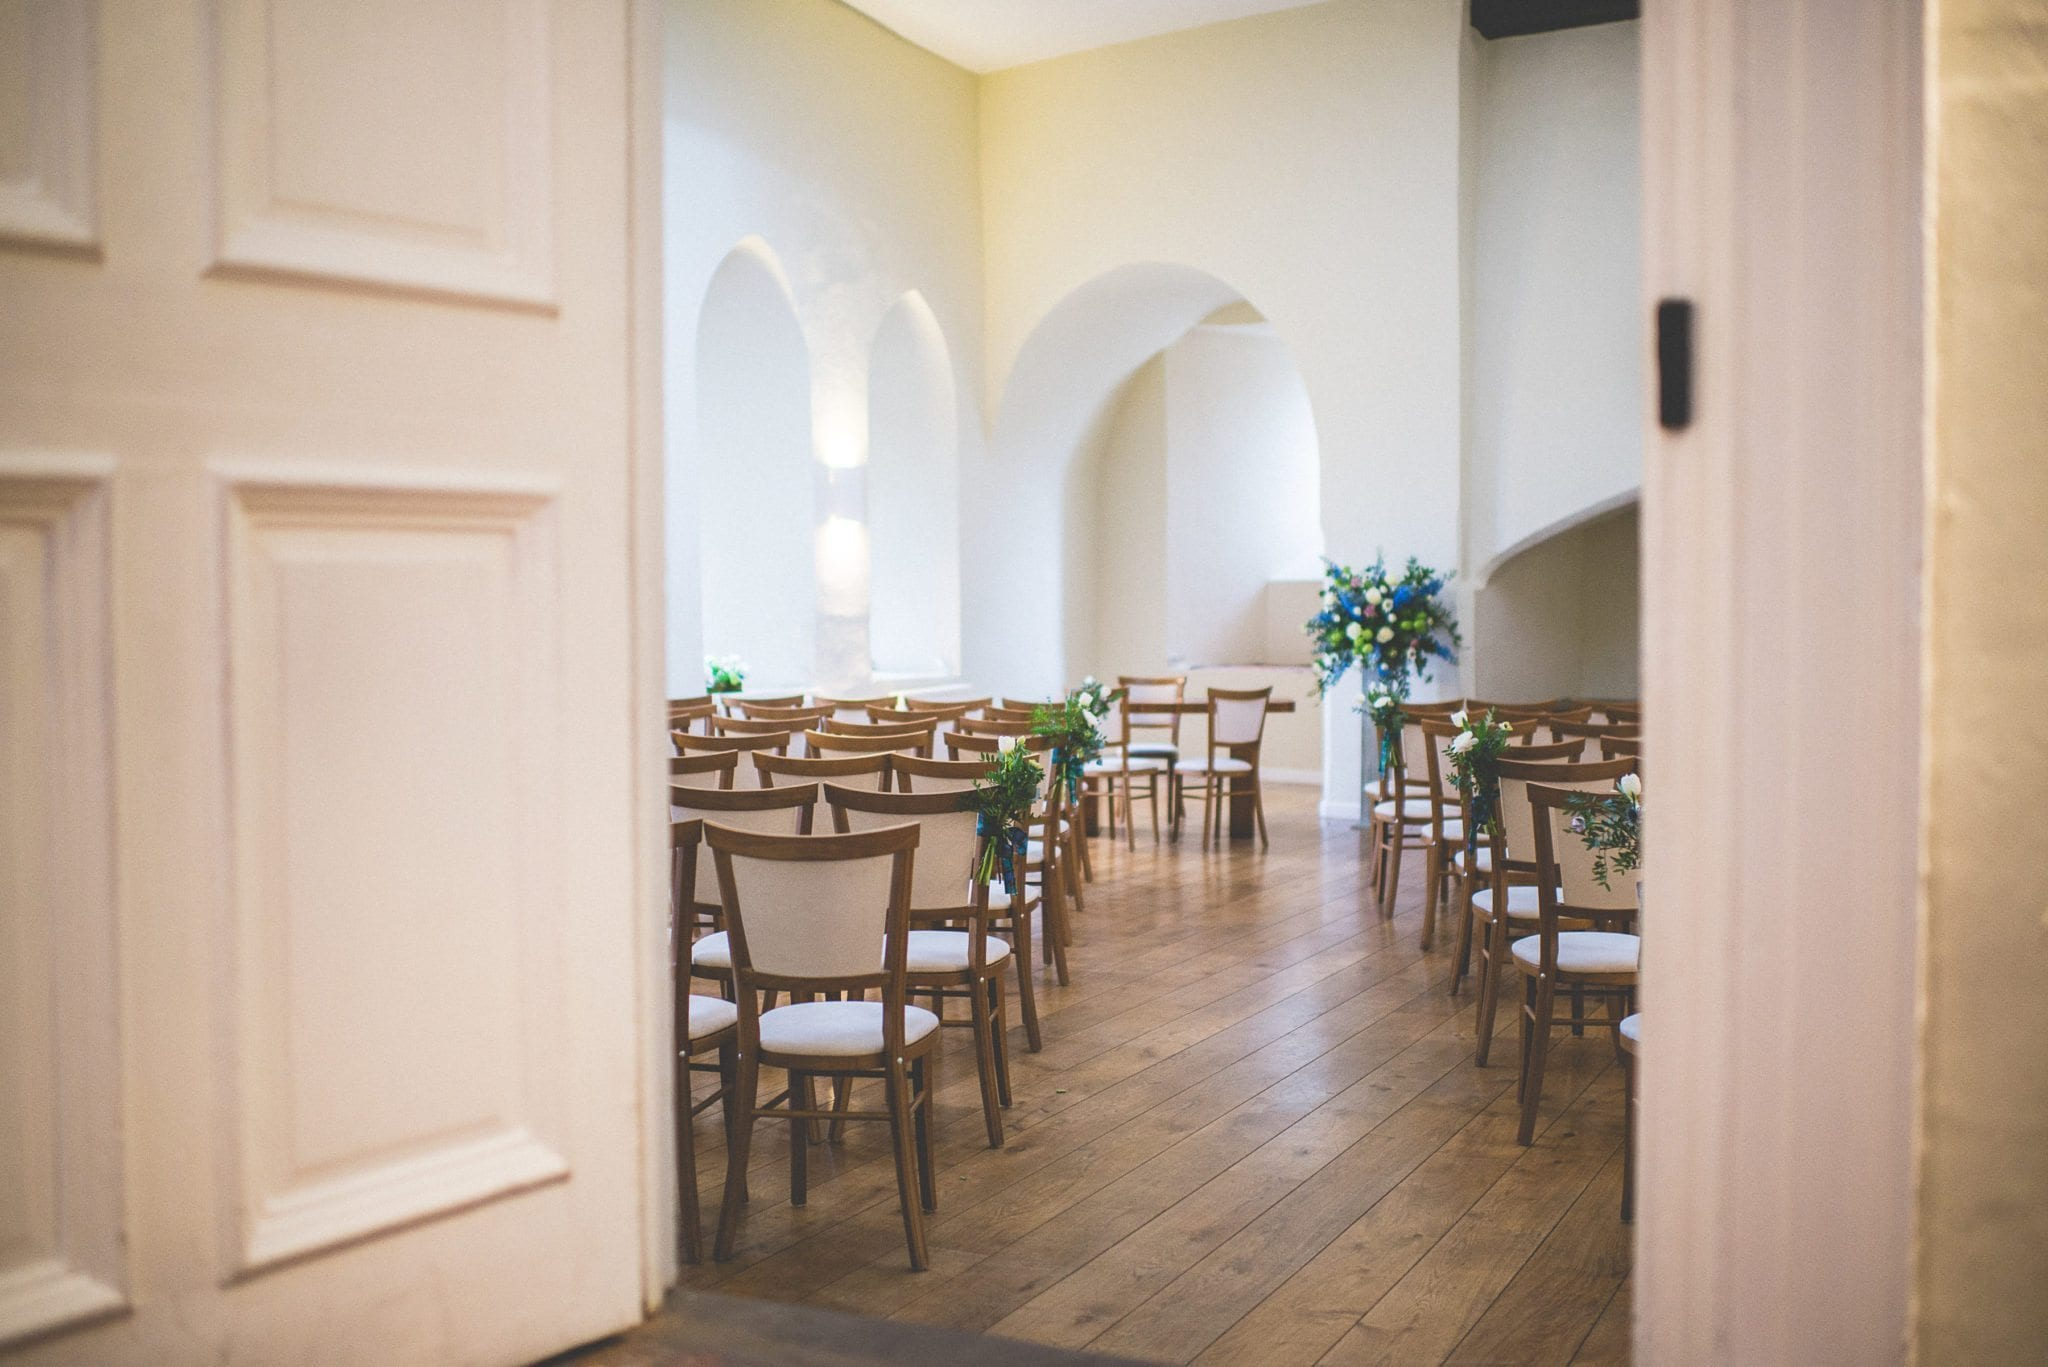 A peek through the door to the ceremony venue - Farnham Castle gatehouse - decorated with wooden chairs and simple floral arrangements